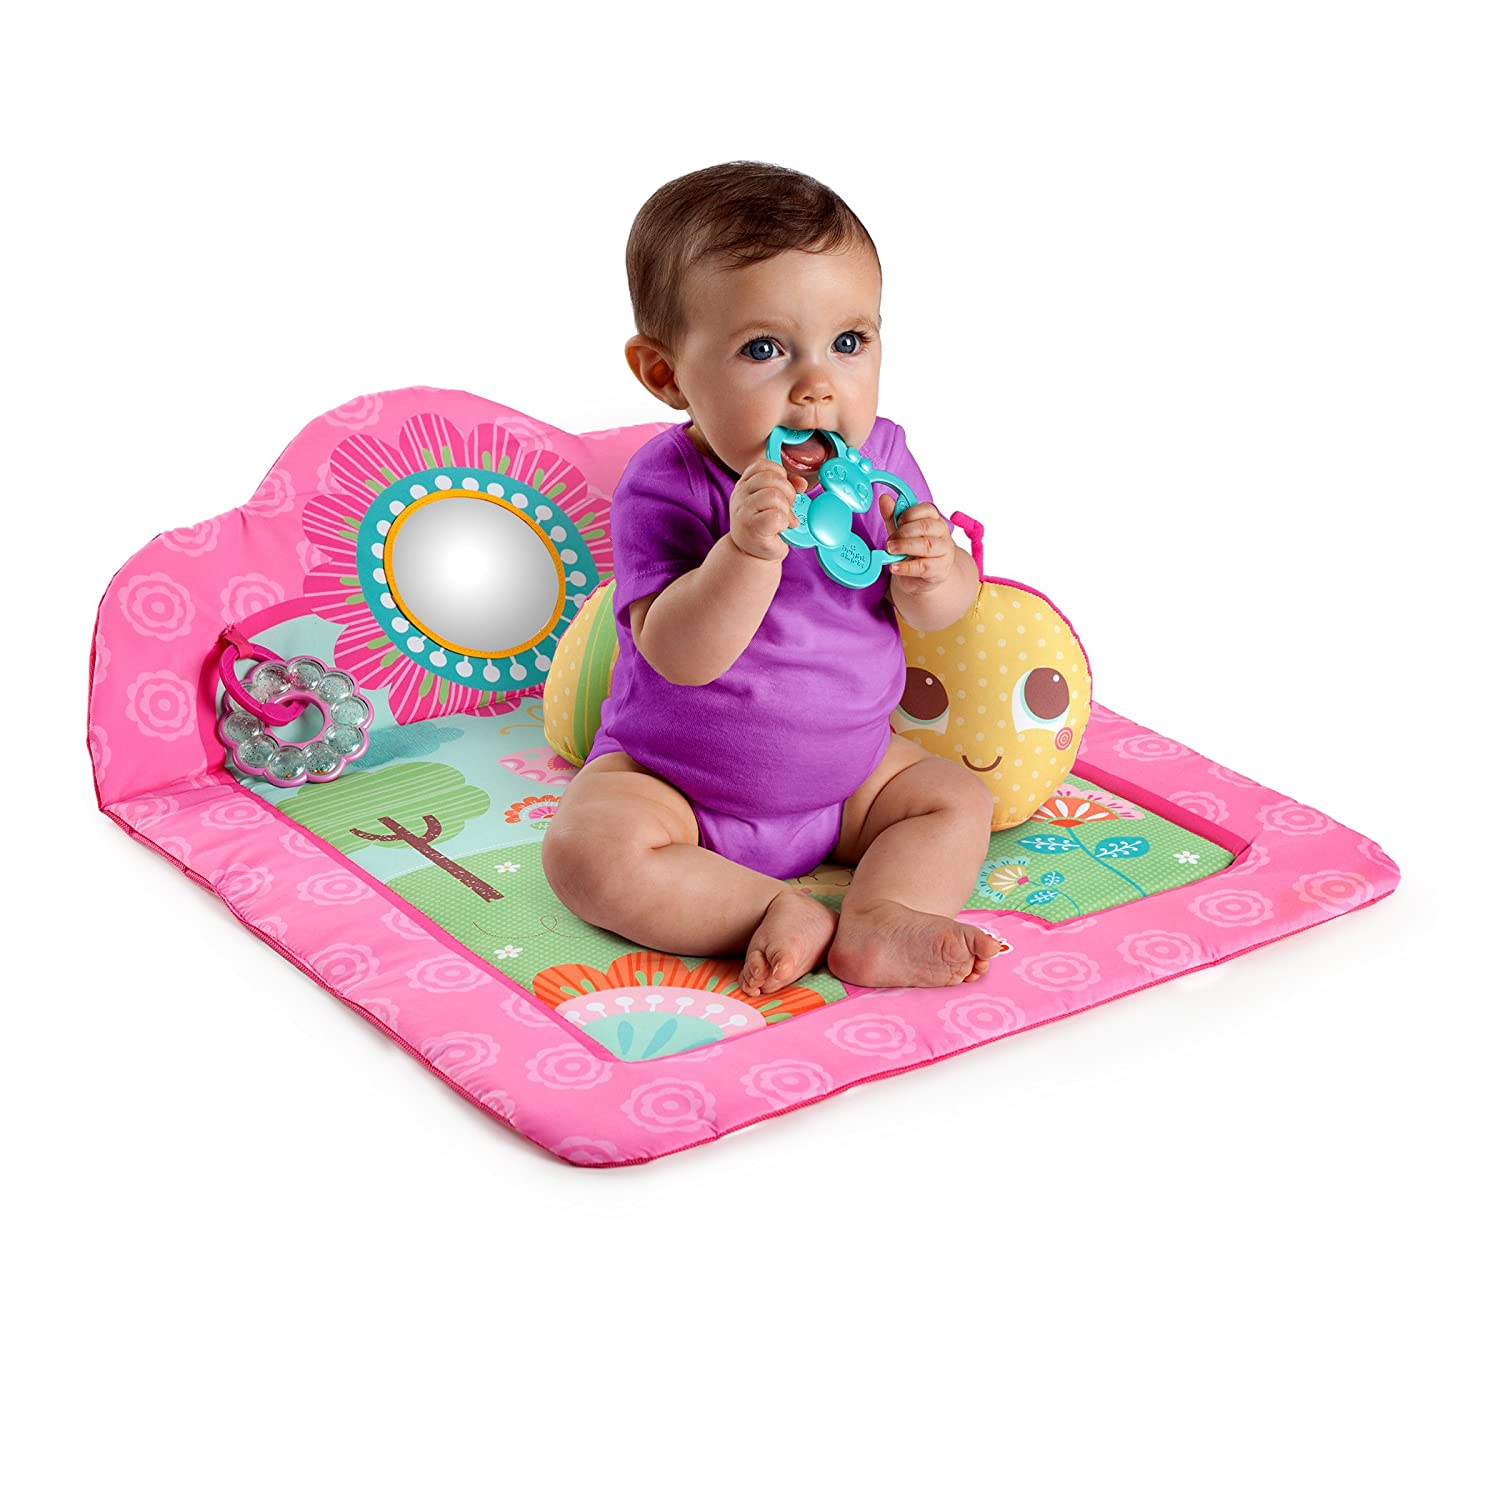 Bright Starts Deluxe Tummy Time Play Mat